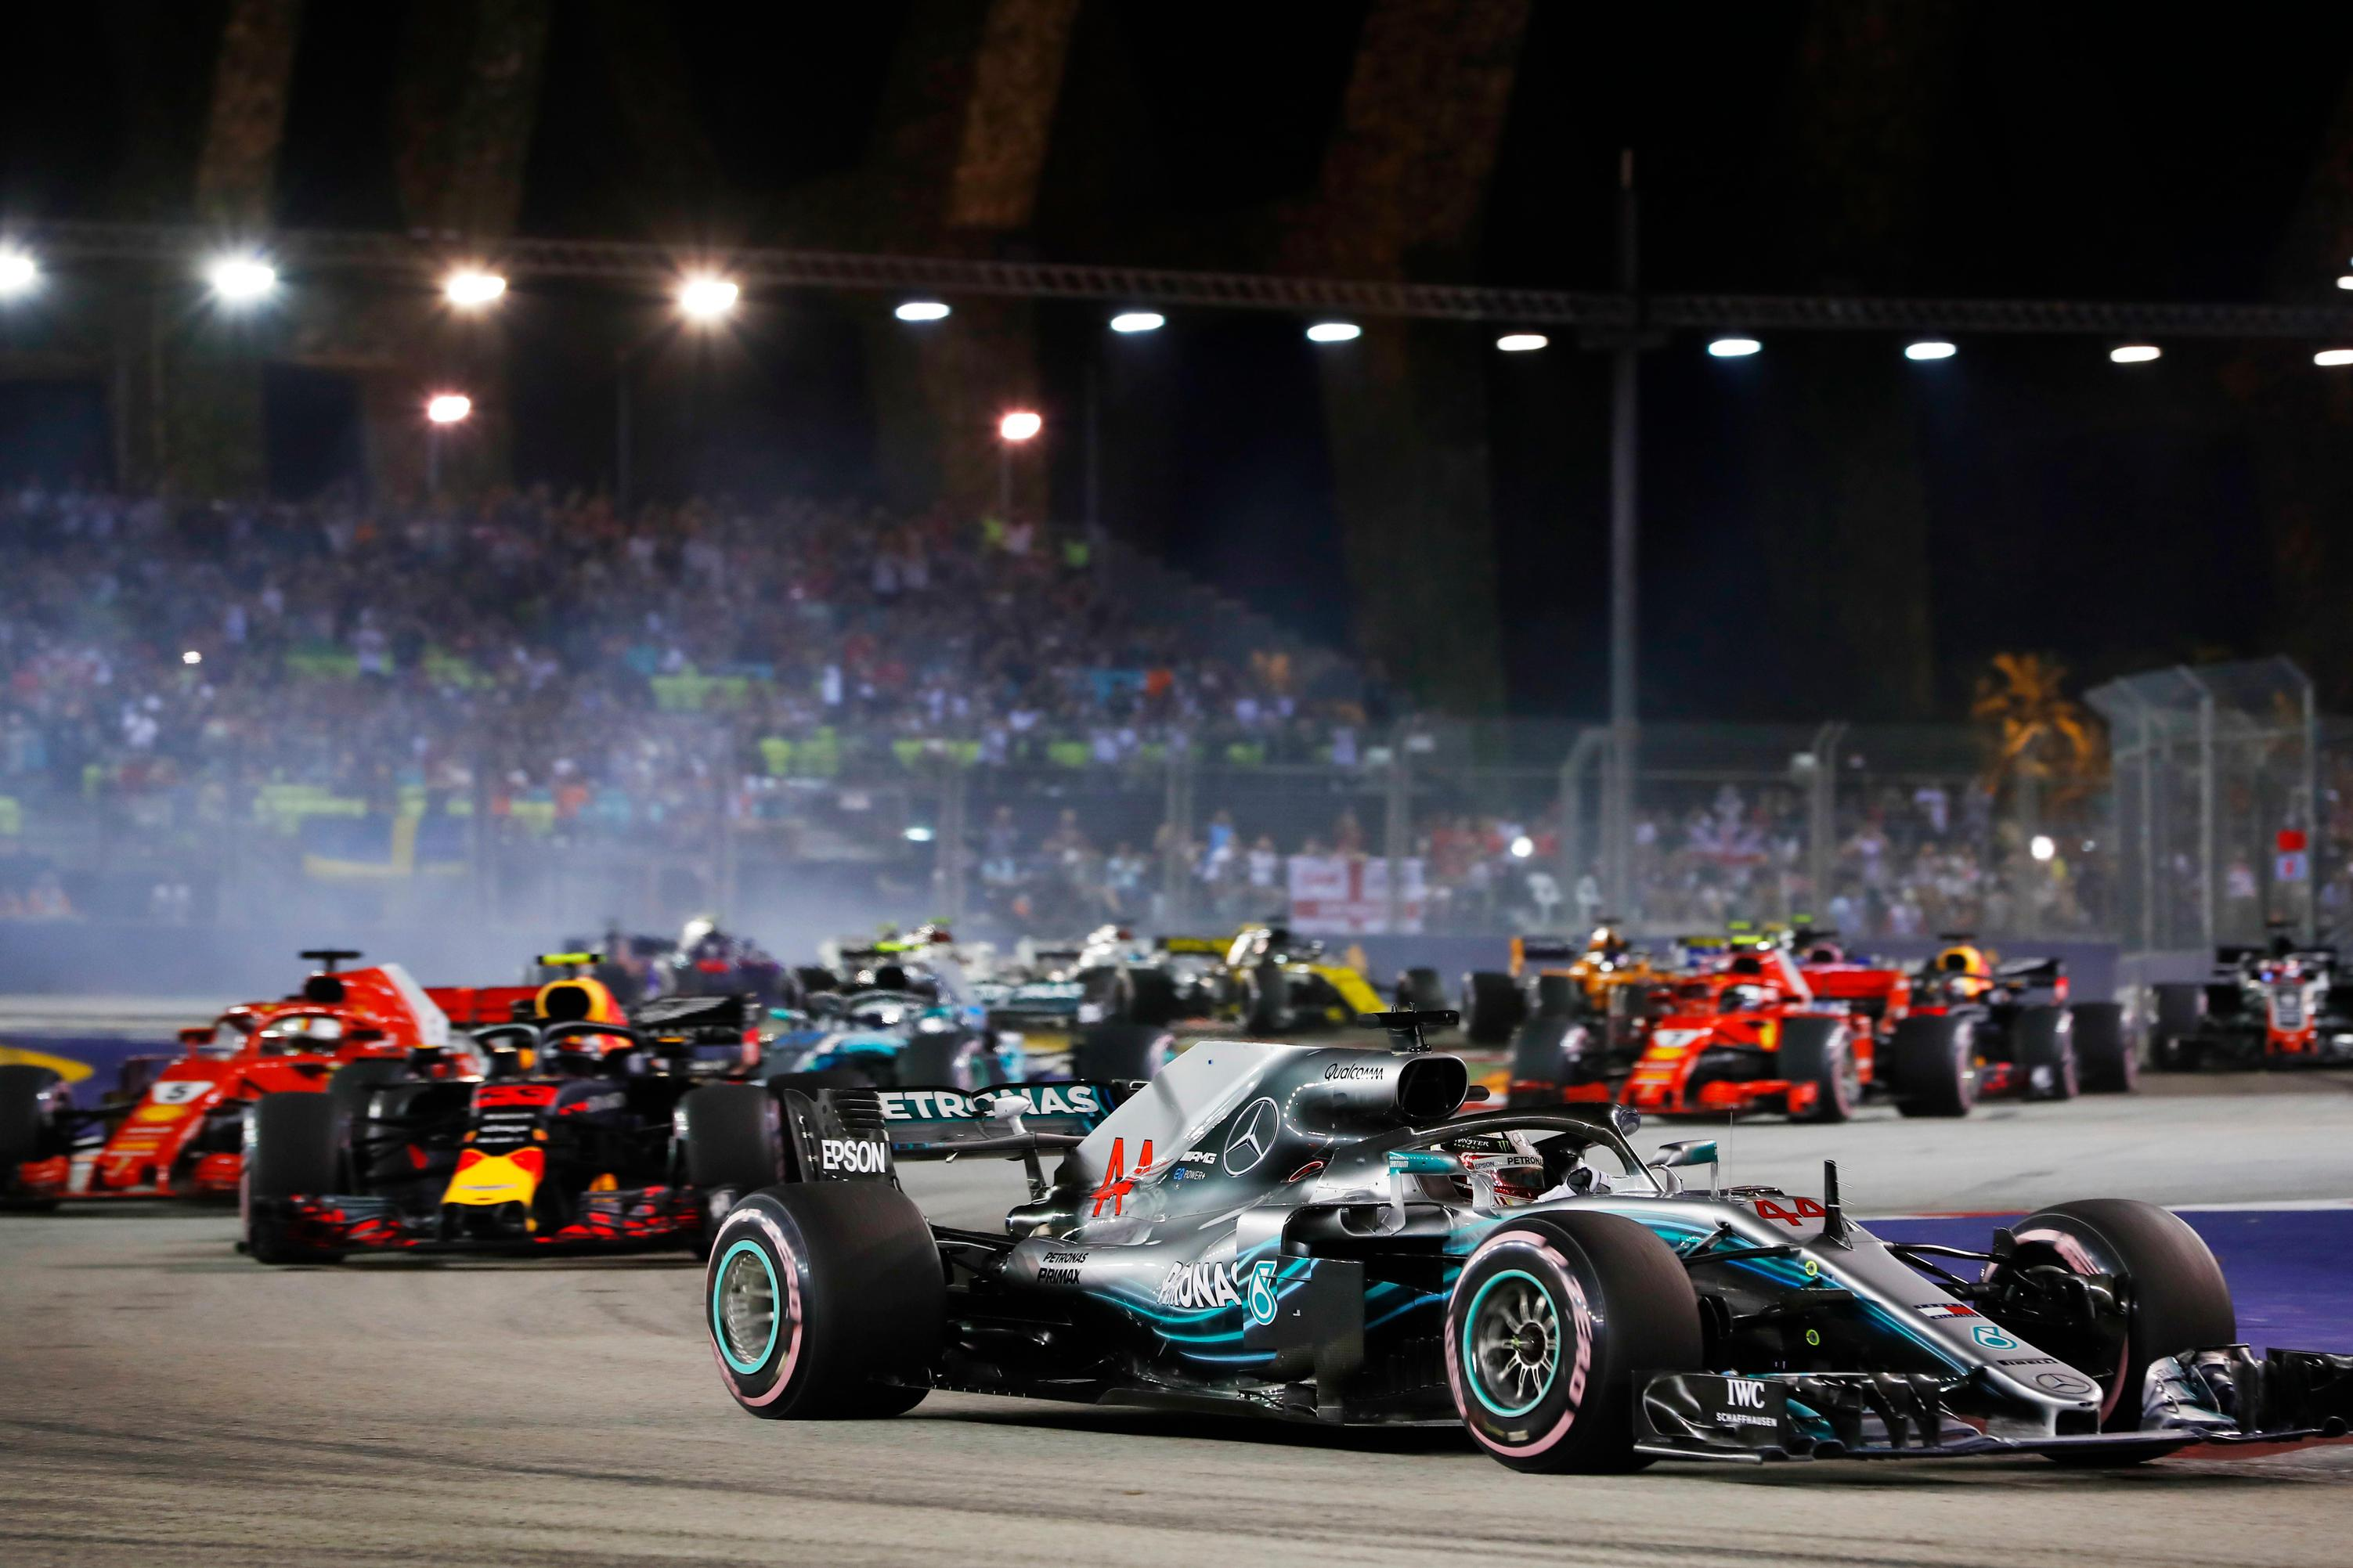 Hamilton led the rest of the field home - and crucially Max Verstappen took second ahead of Sebastian Vettel